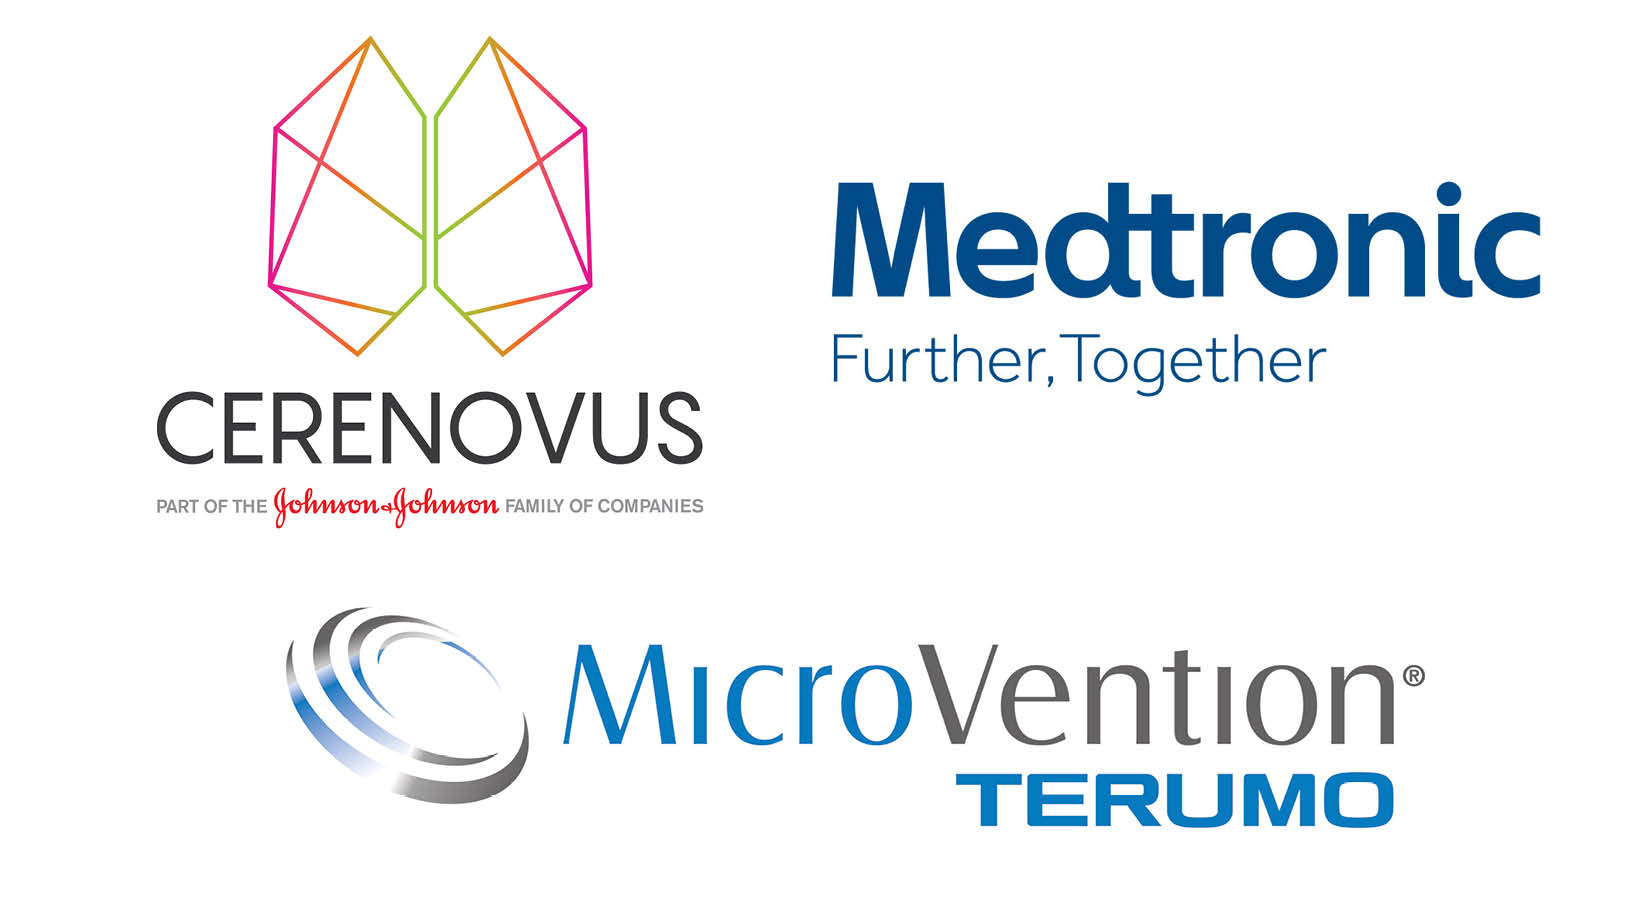 Cerenovus, Medtronic and Microvention, the Platinum Sponsors of the Congress 2020.